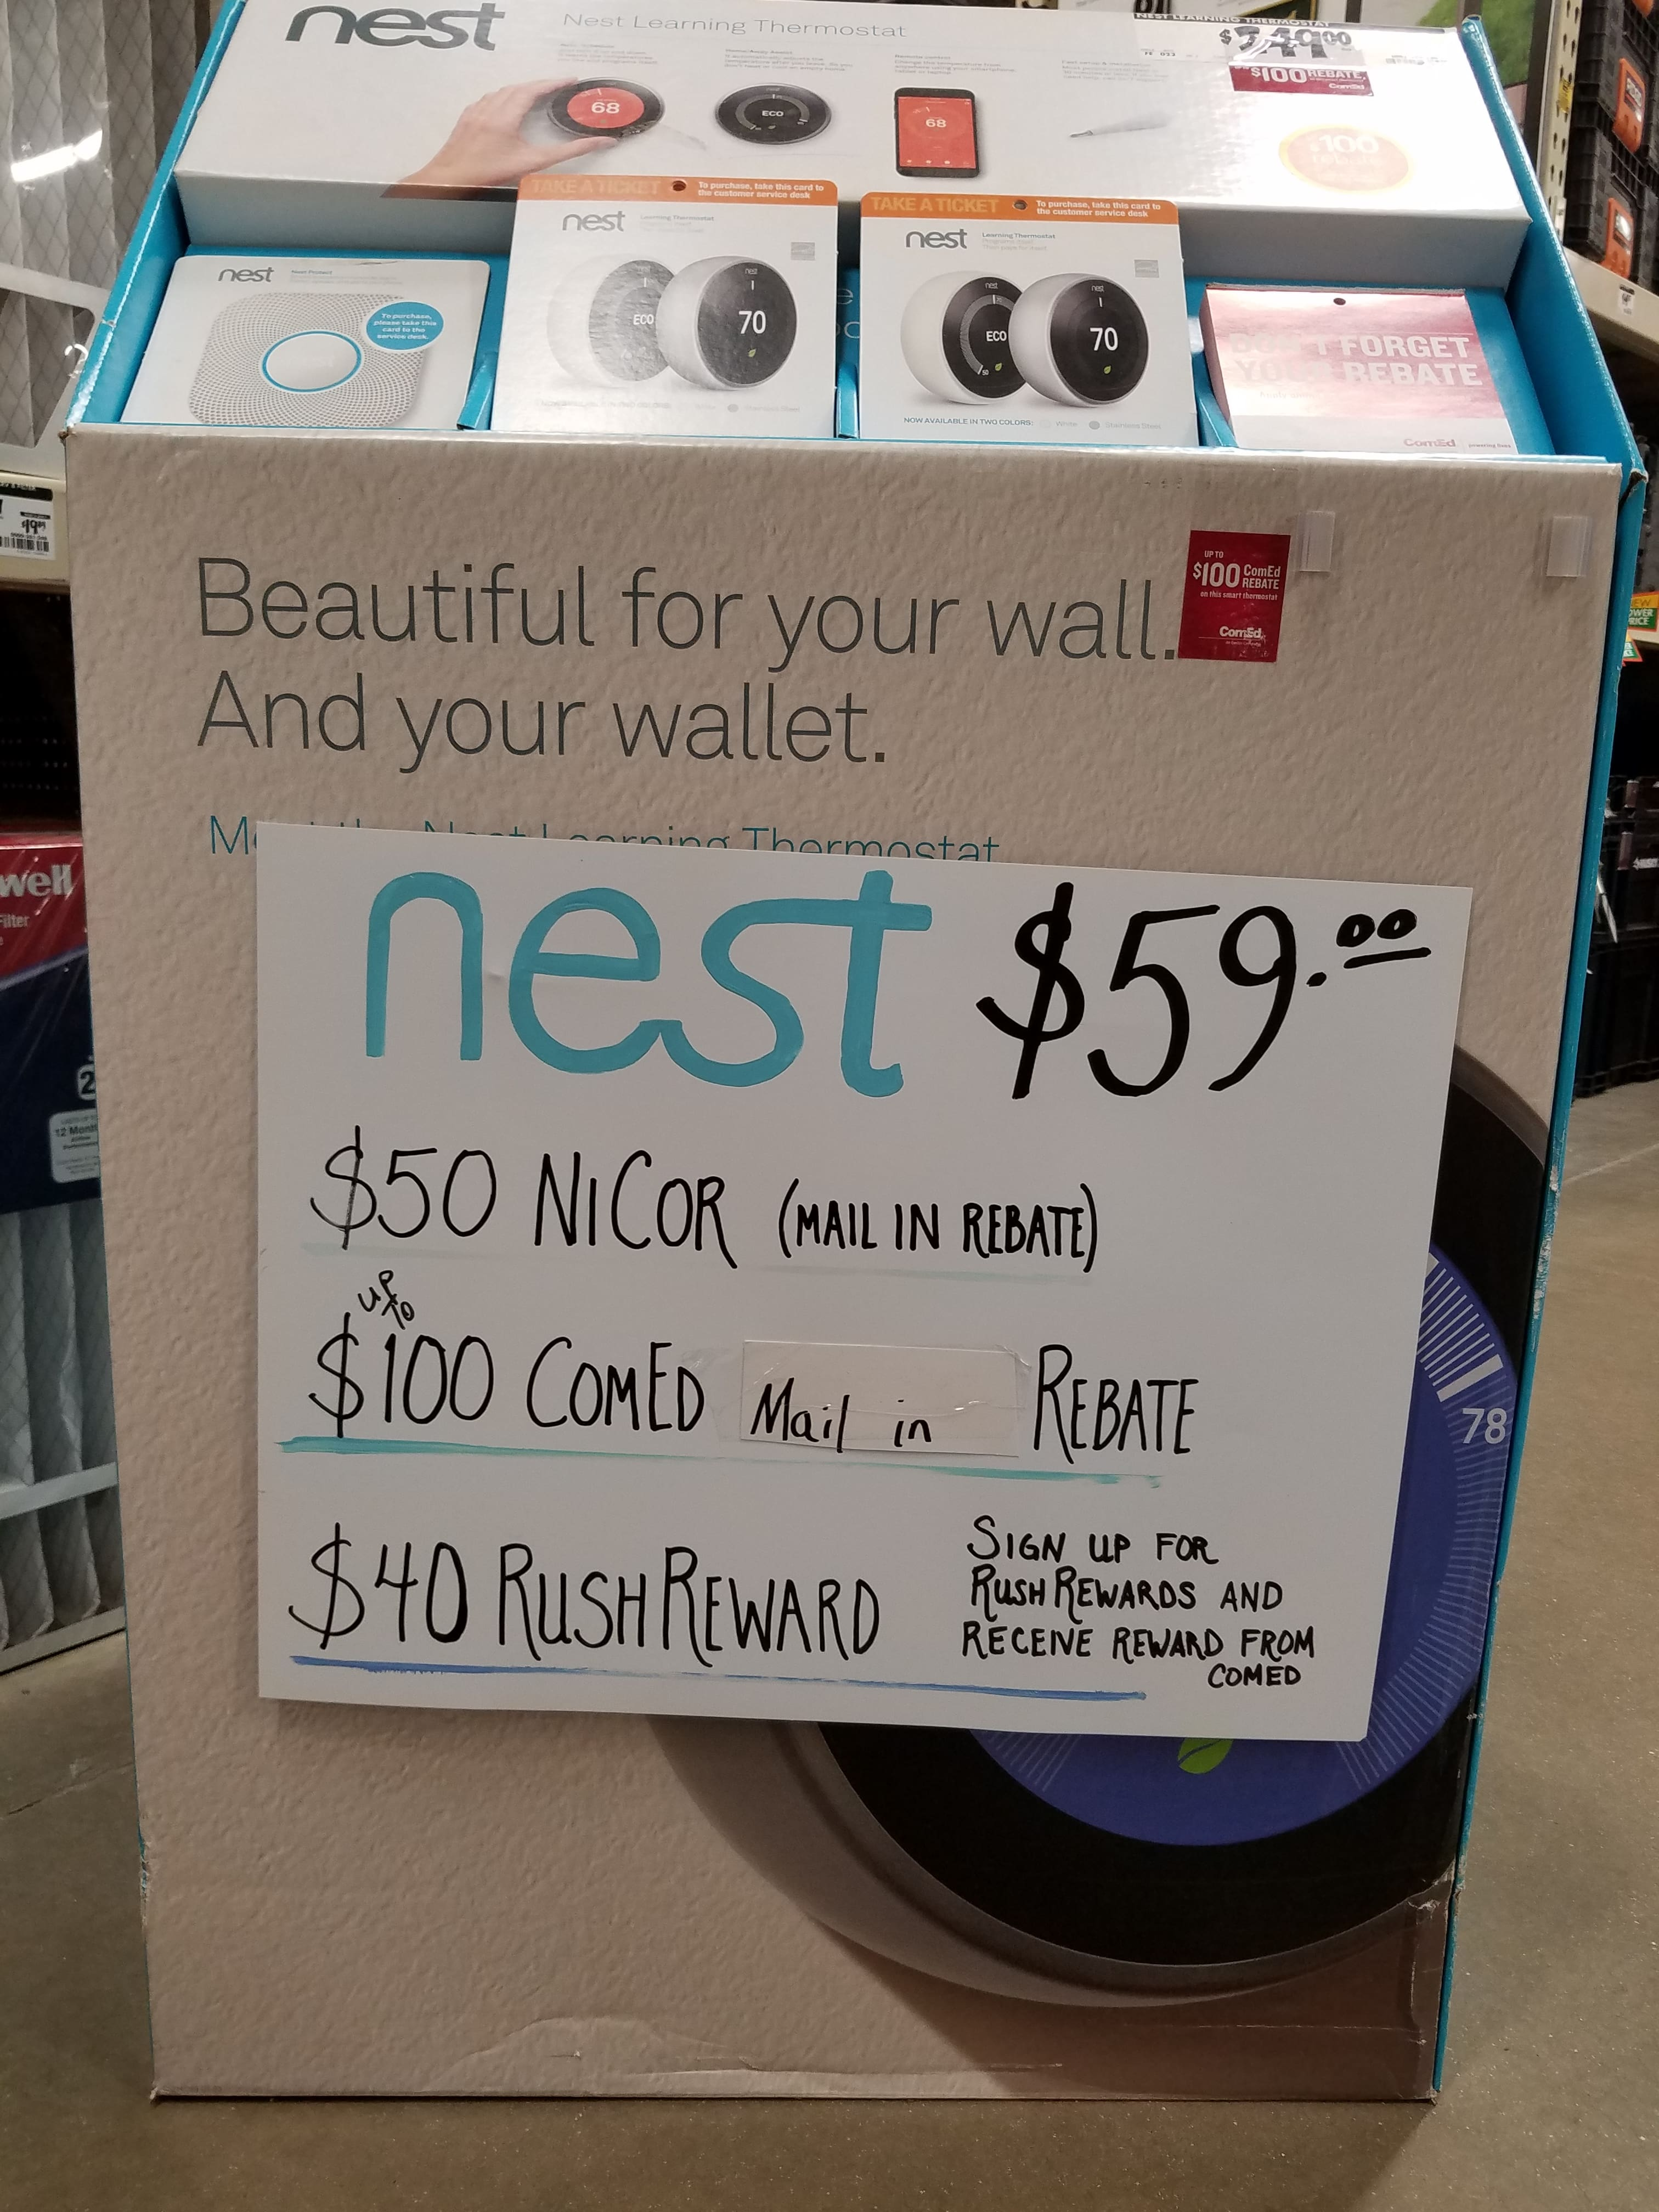 Nest Thermostat As Low as $59 After Rebates Ed and Nicor Gas